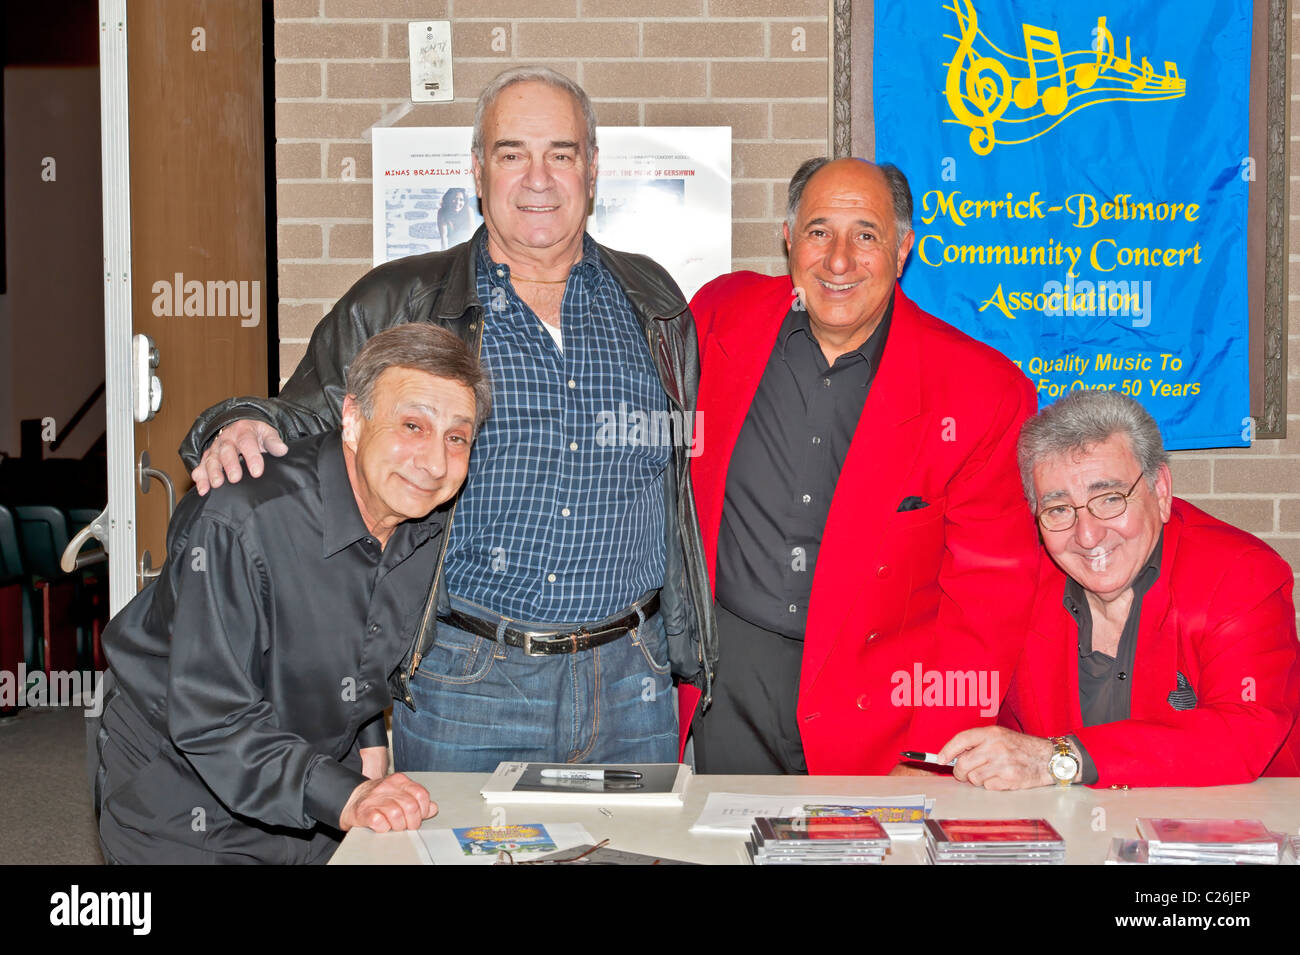 APRIL 2. 2011 - BELLMORE, NEW YORK: Danny and the Juniors Doo-Wop music group signing music CDs for fans after MBCCA - Stock Image